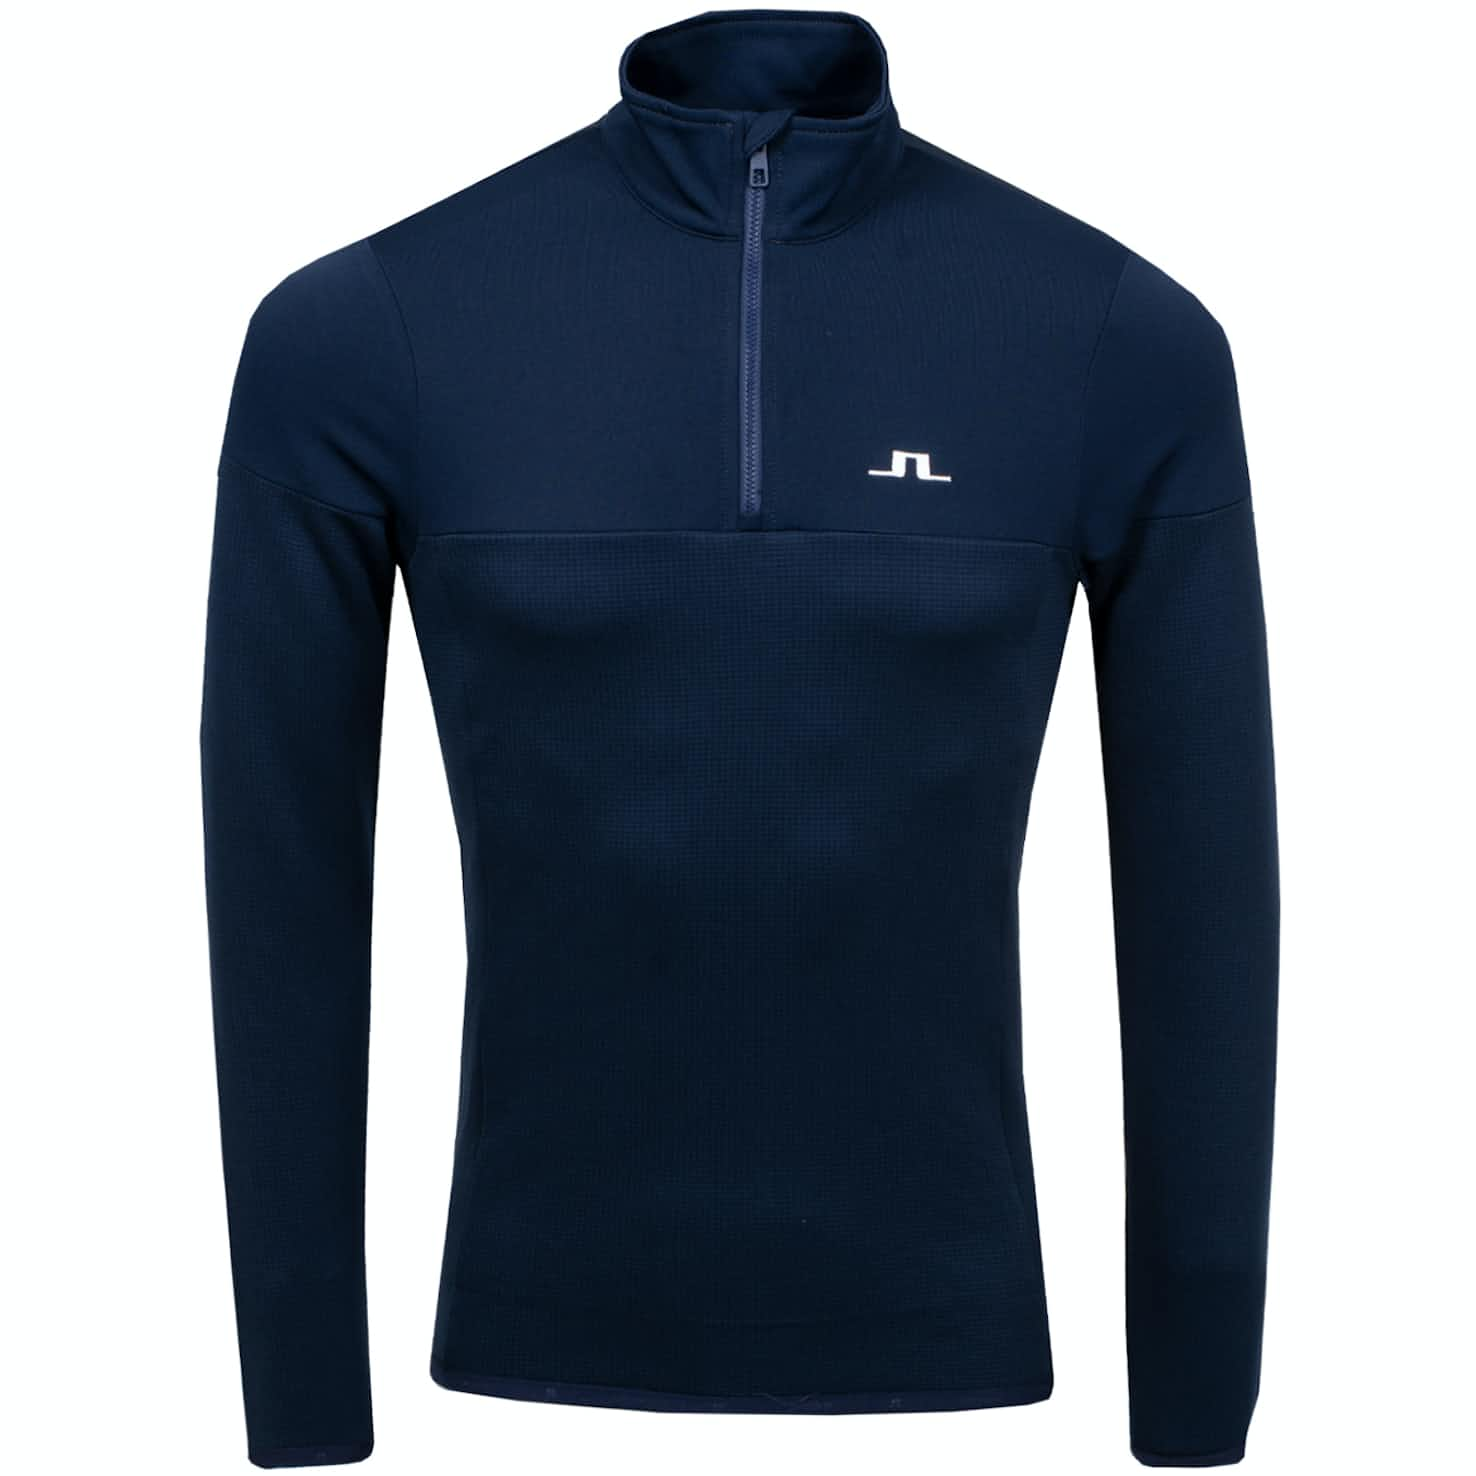 Hubbard Quarter Zip Mid Brushed Fieldsensor JL Navy - AW19